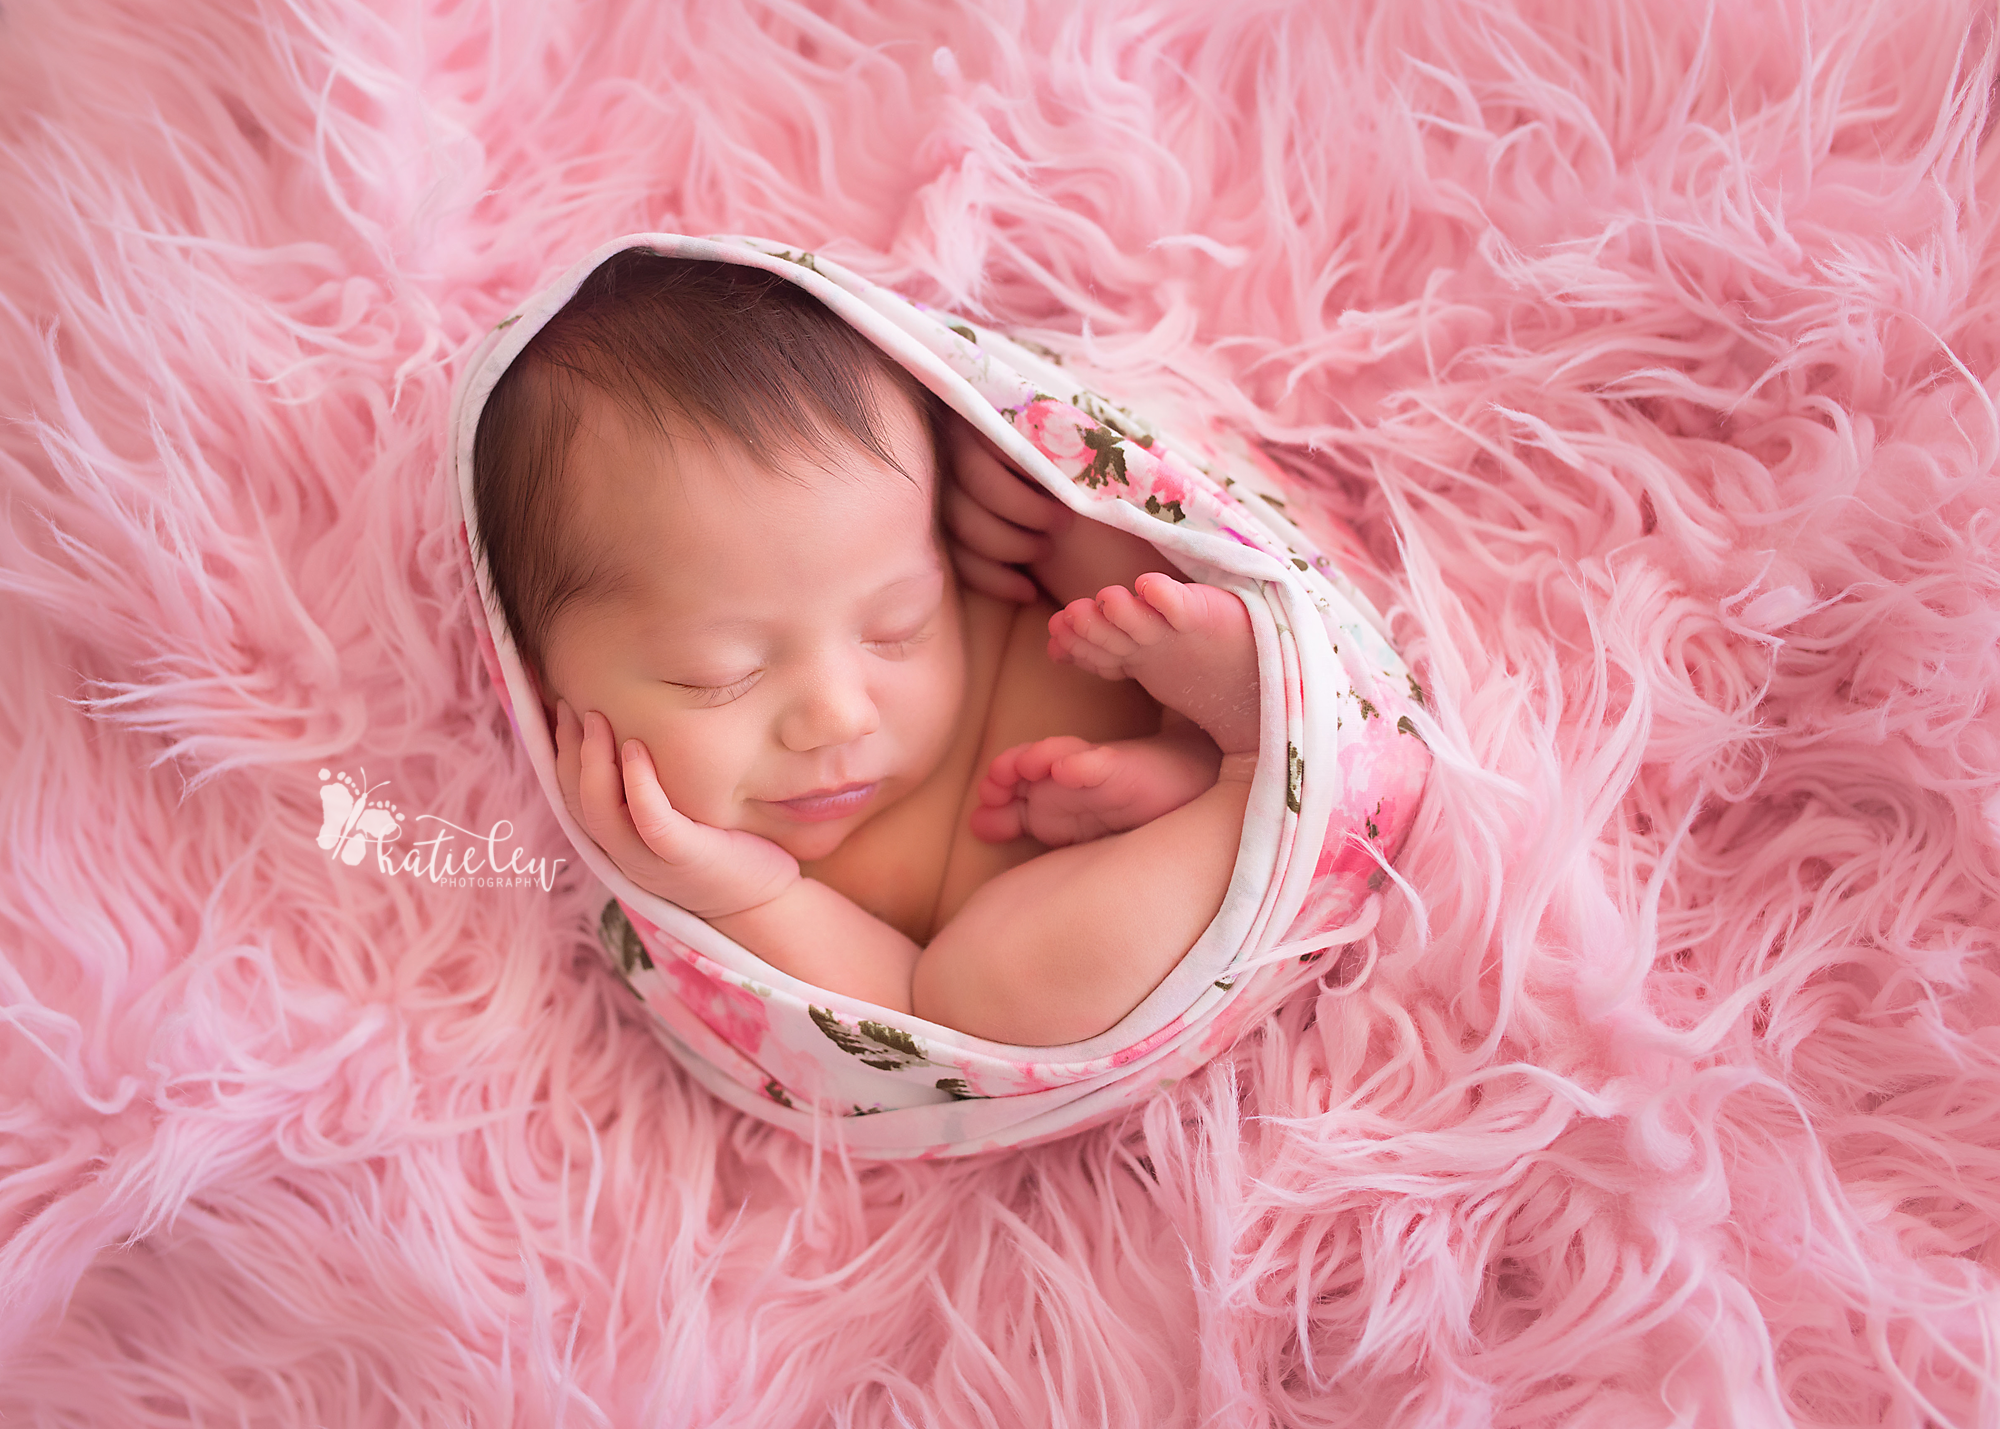 baby girl smiling and nestled in pink fur